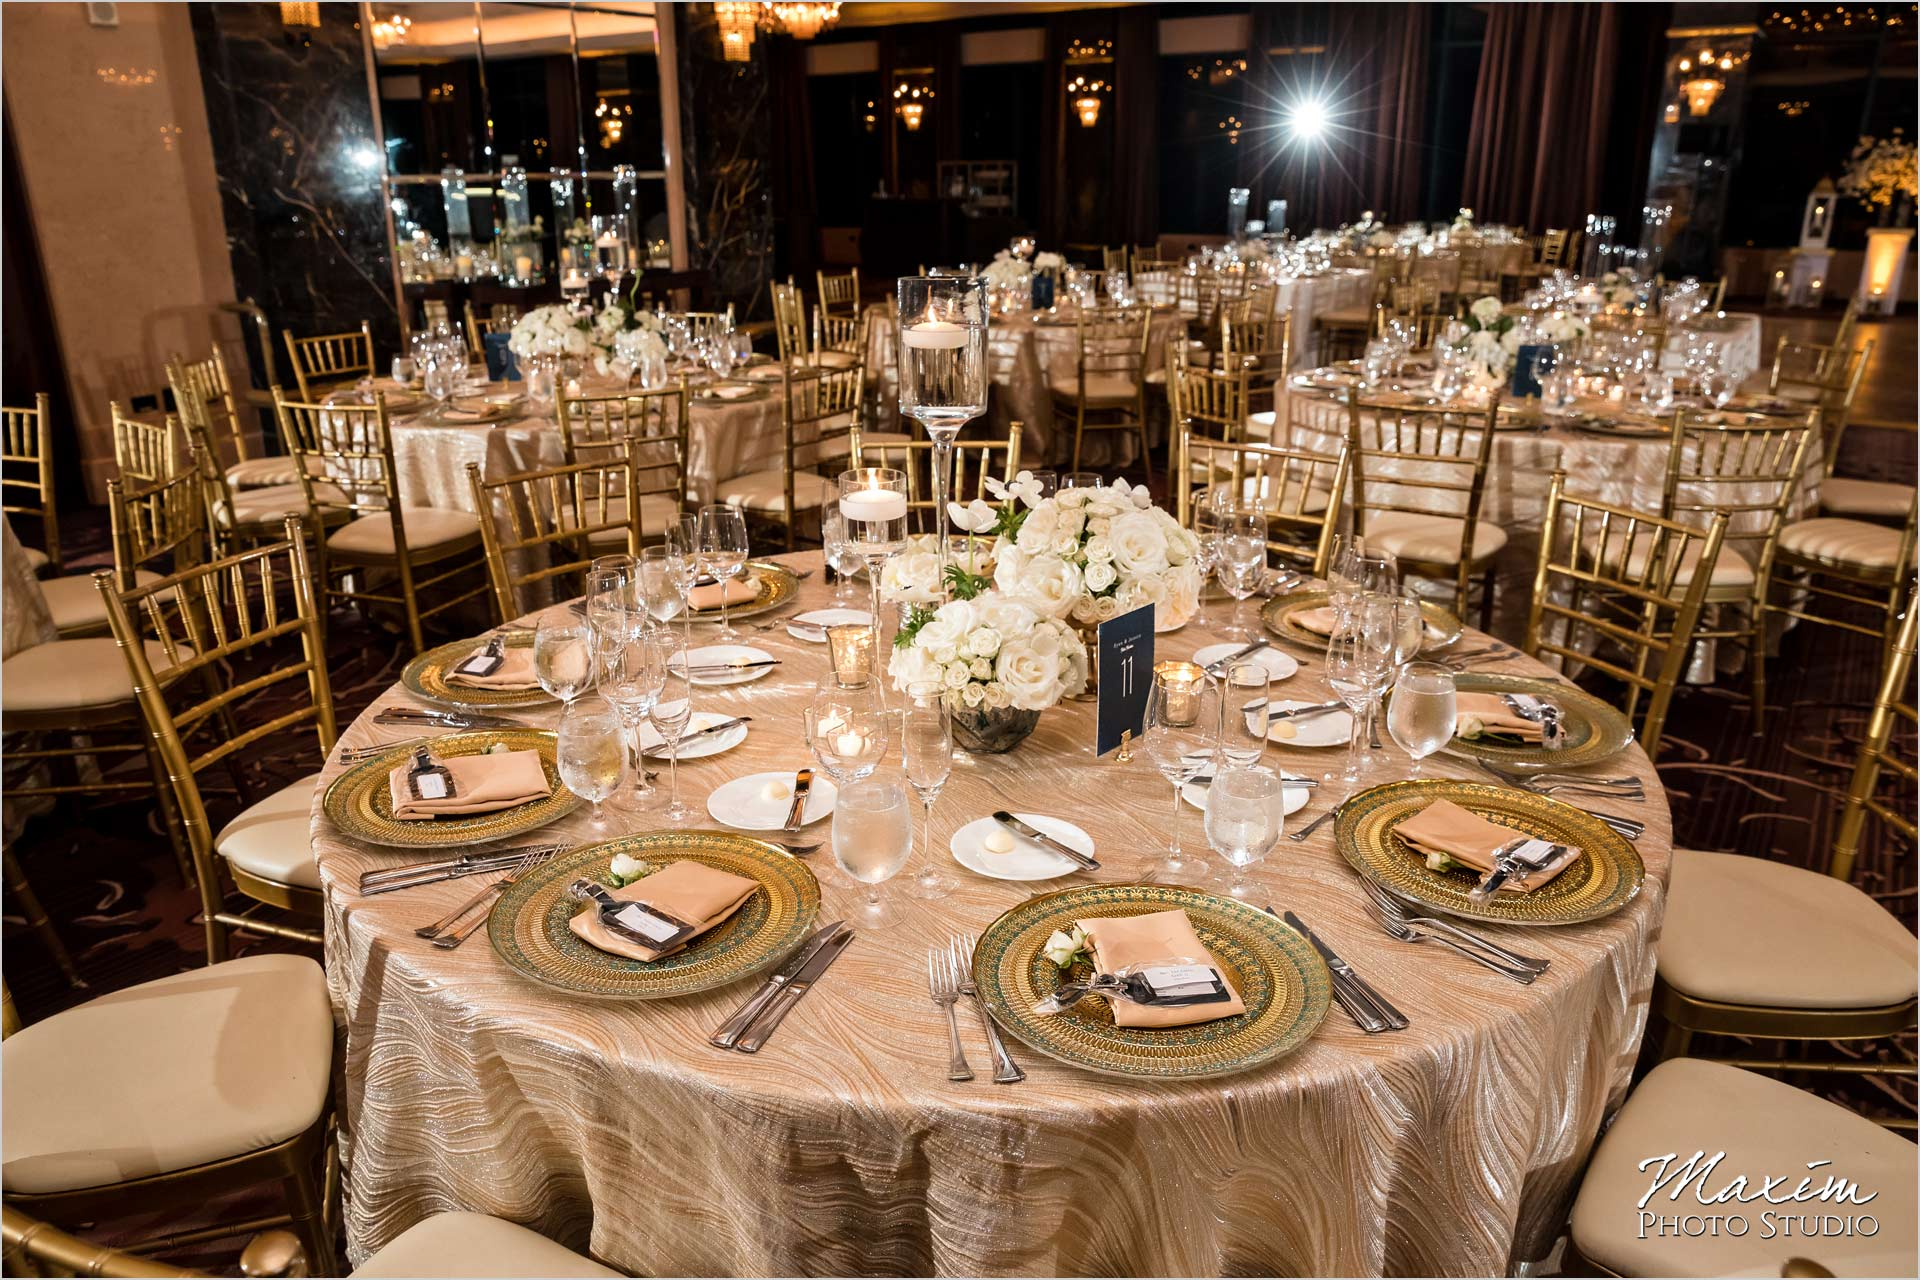 Condado Vanderbilt Wedding Reception Table Setting